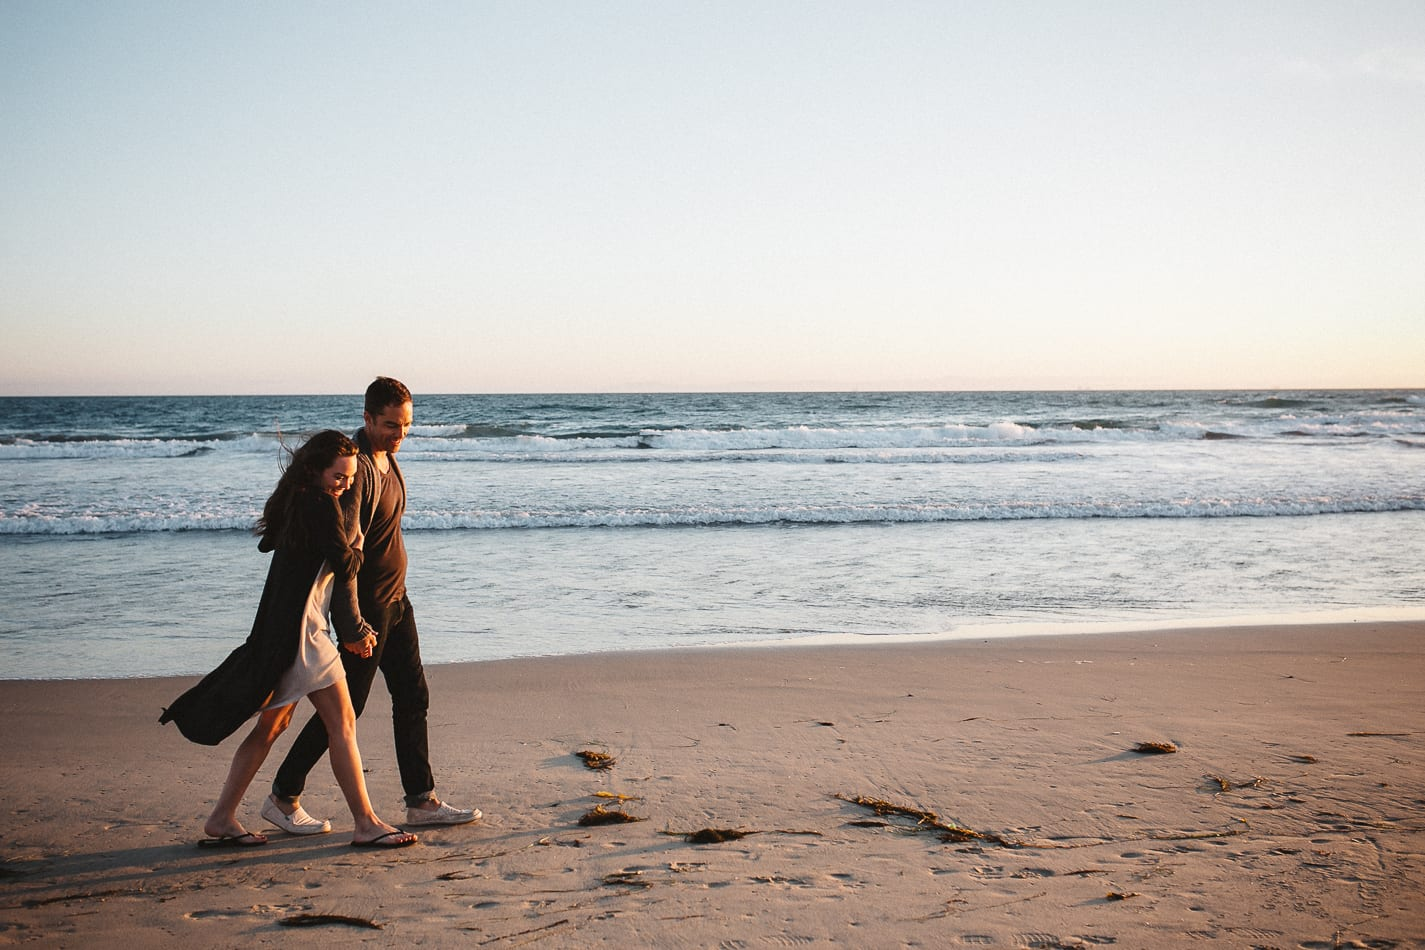 jason-alyssa-huntington-beach-california-engagement-photographer-17